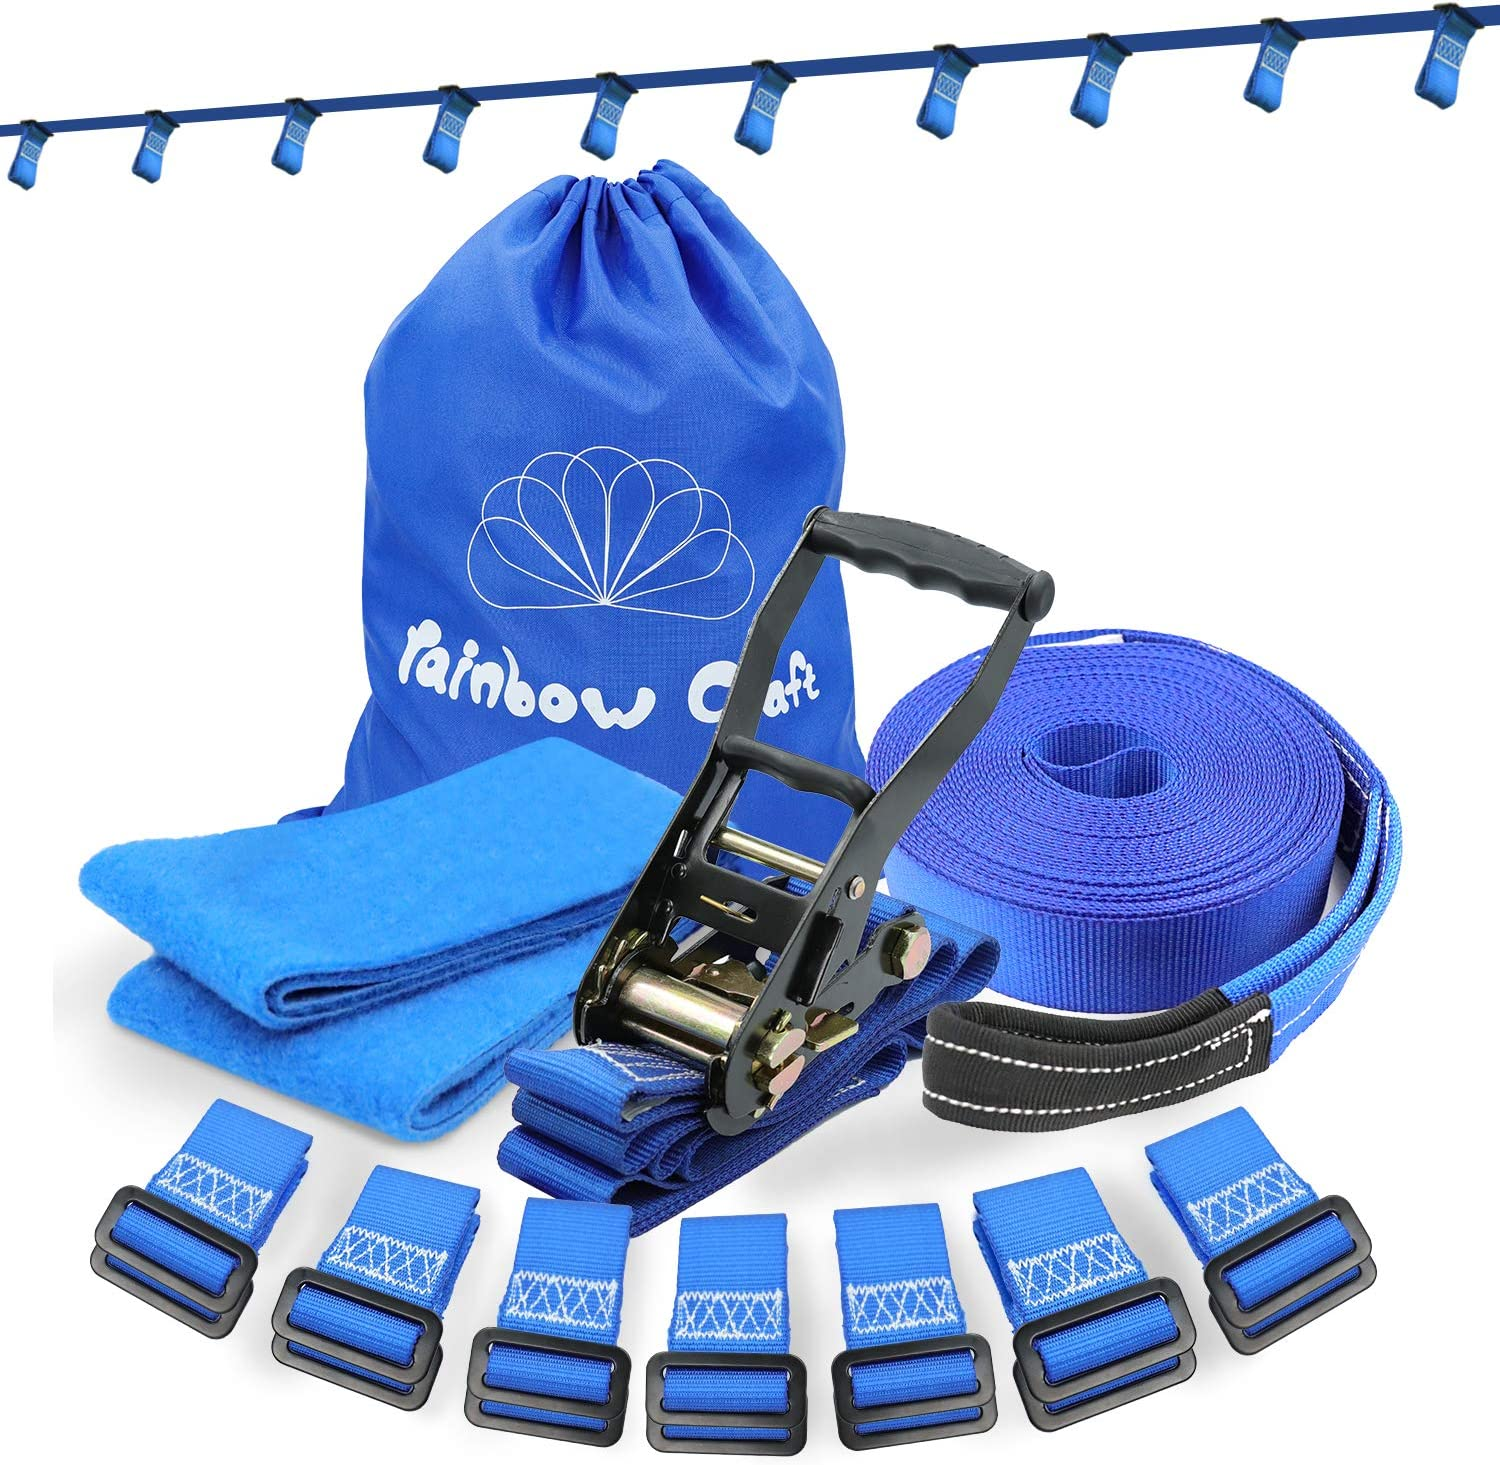 Rainbow Craft Ninja Line for Attaching Kids Ninja Obstacle Accessories - High Duty Towing Strap Grade Ninjaline Slacking Line - with 14pc Removable Buckles - Blue Color